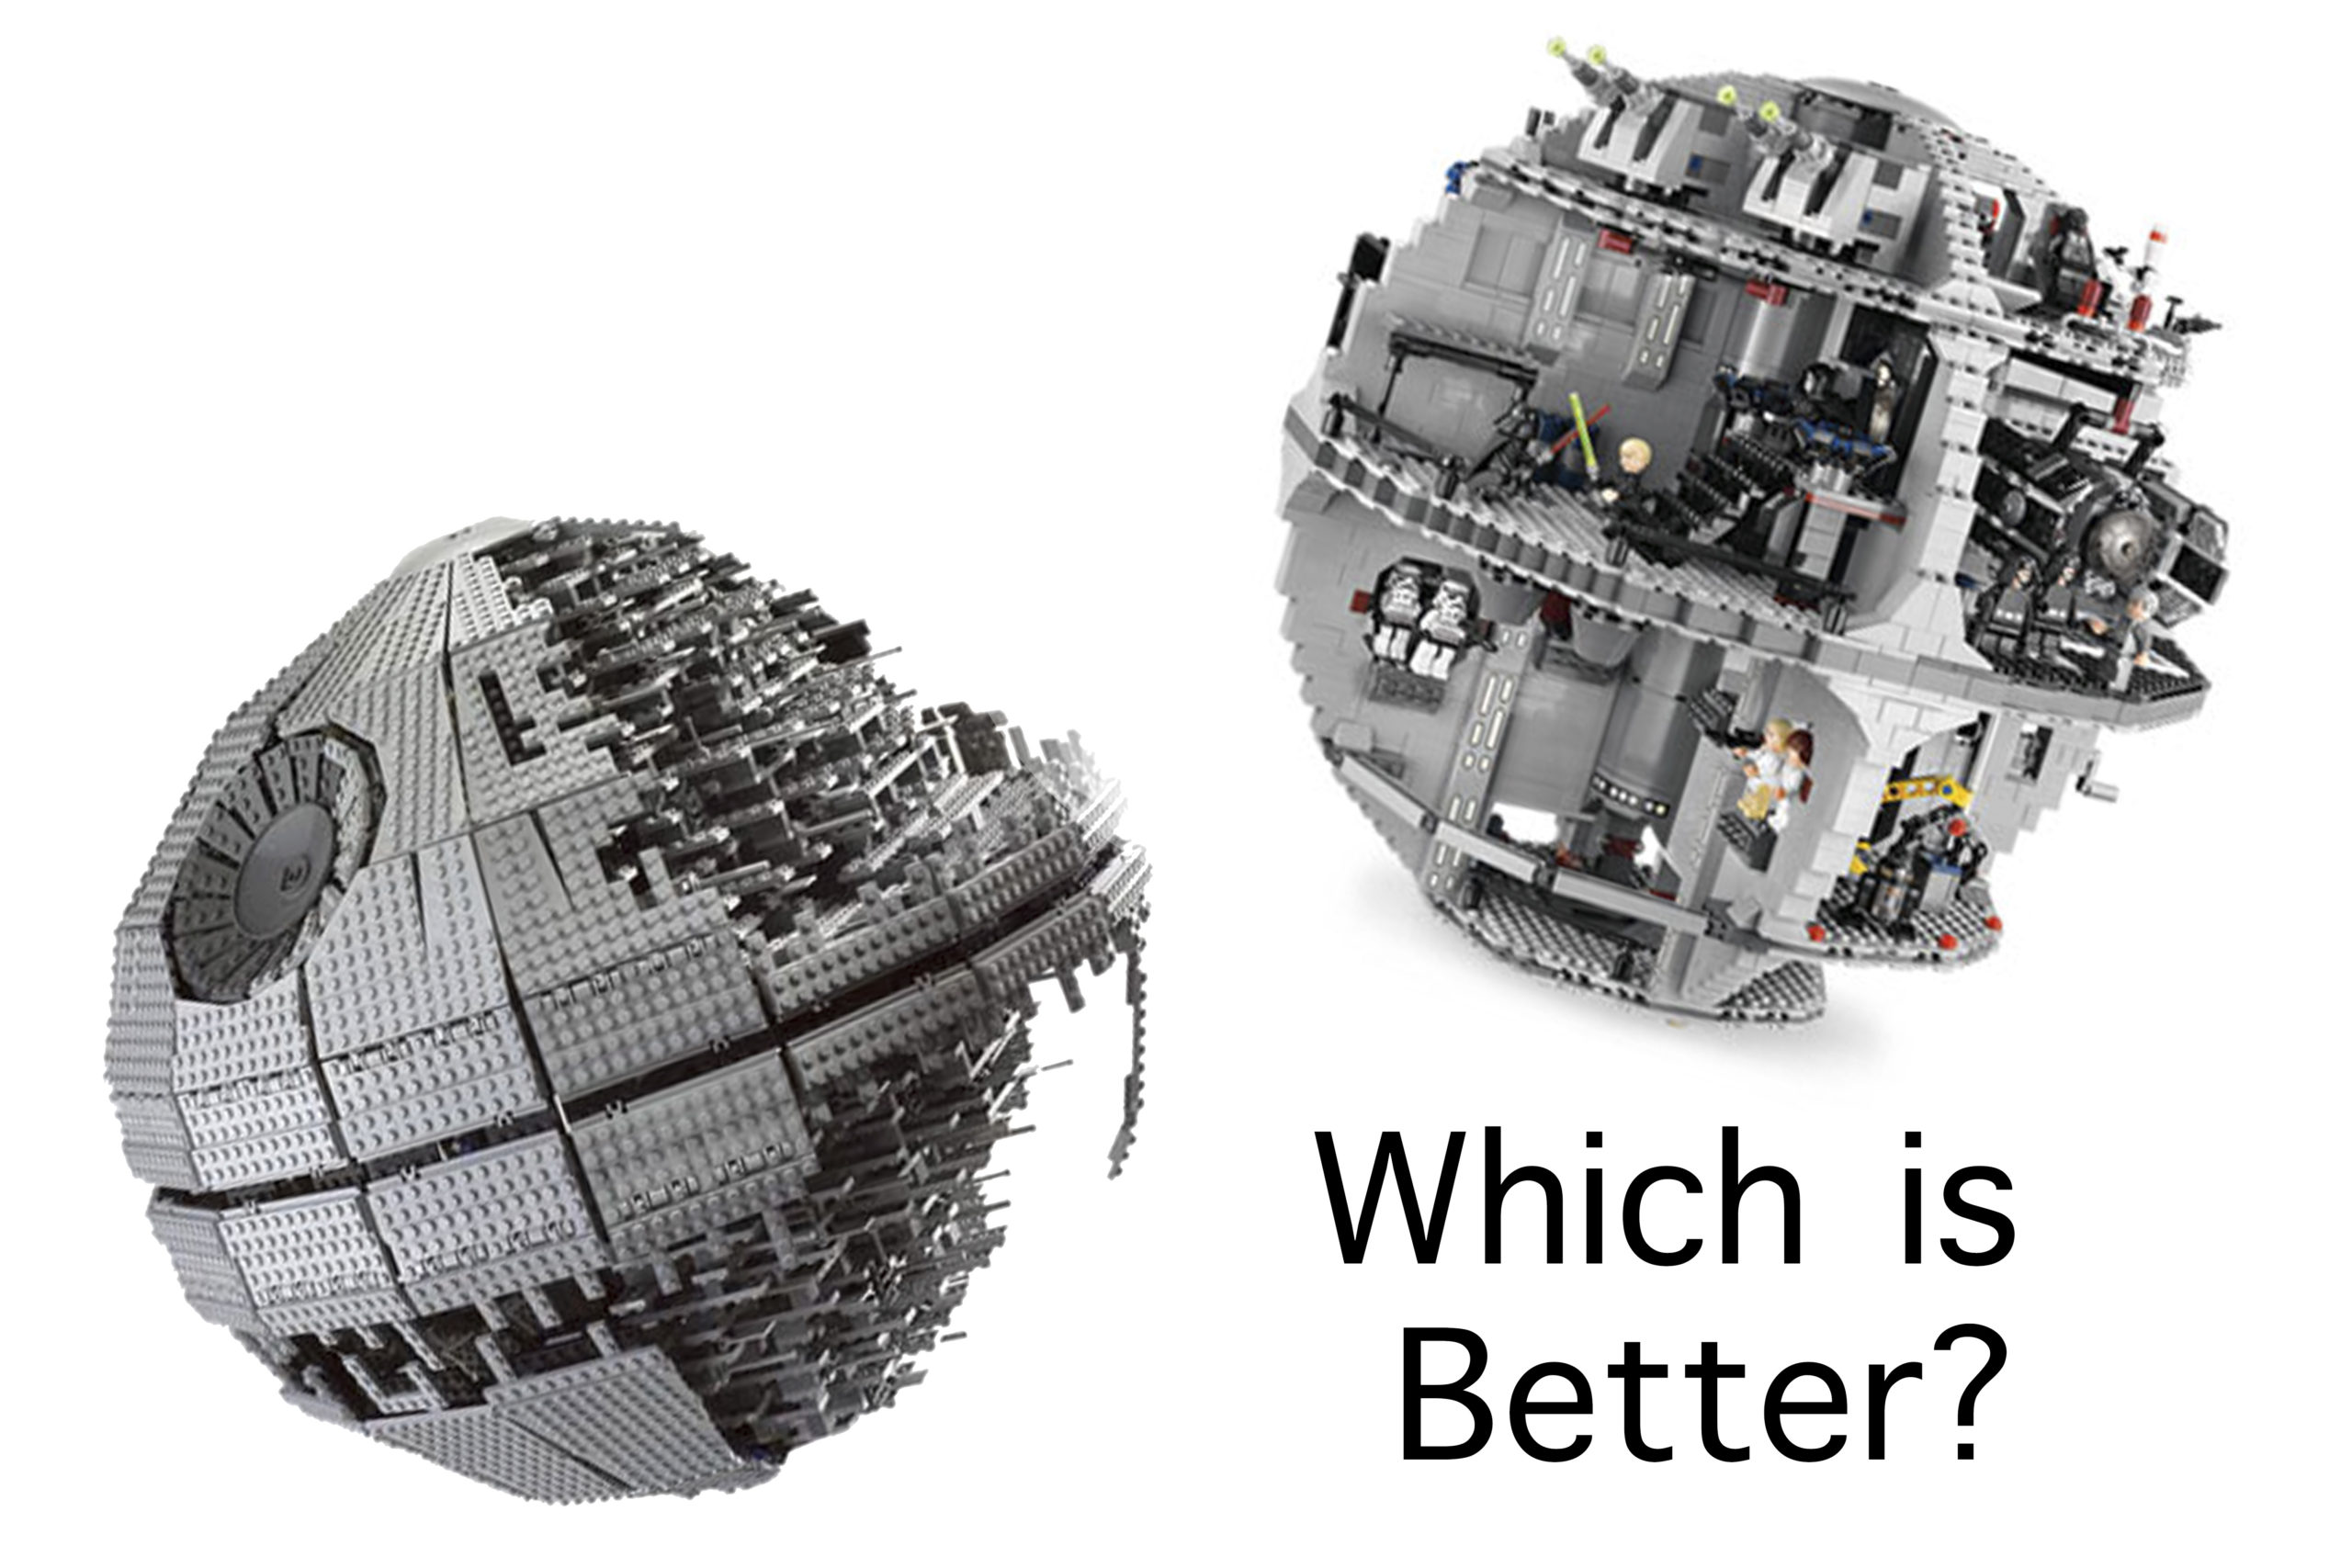 LEGO Death Star - which one is better?